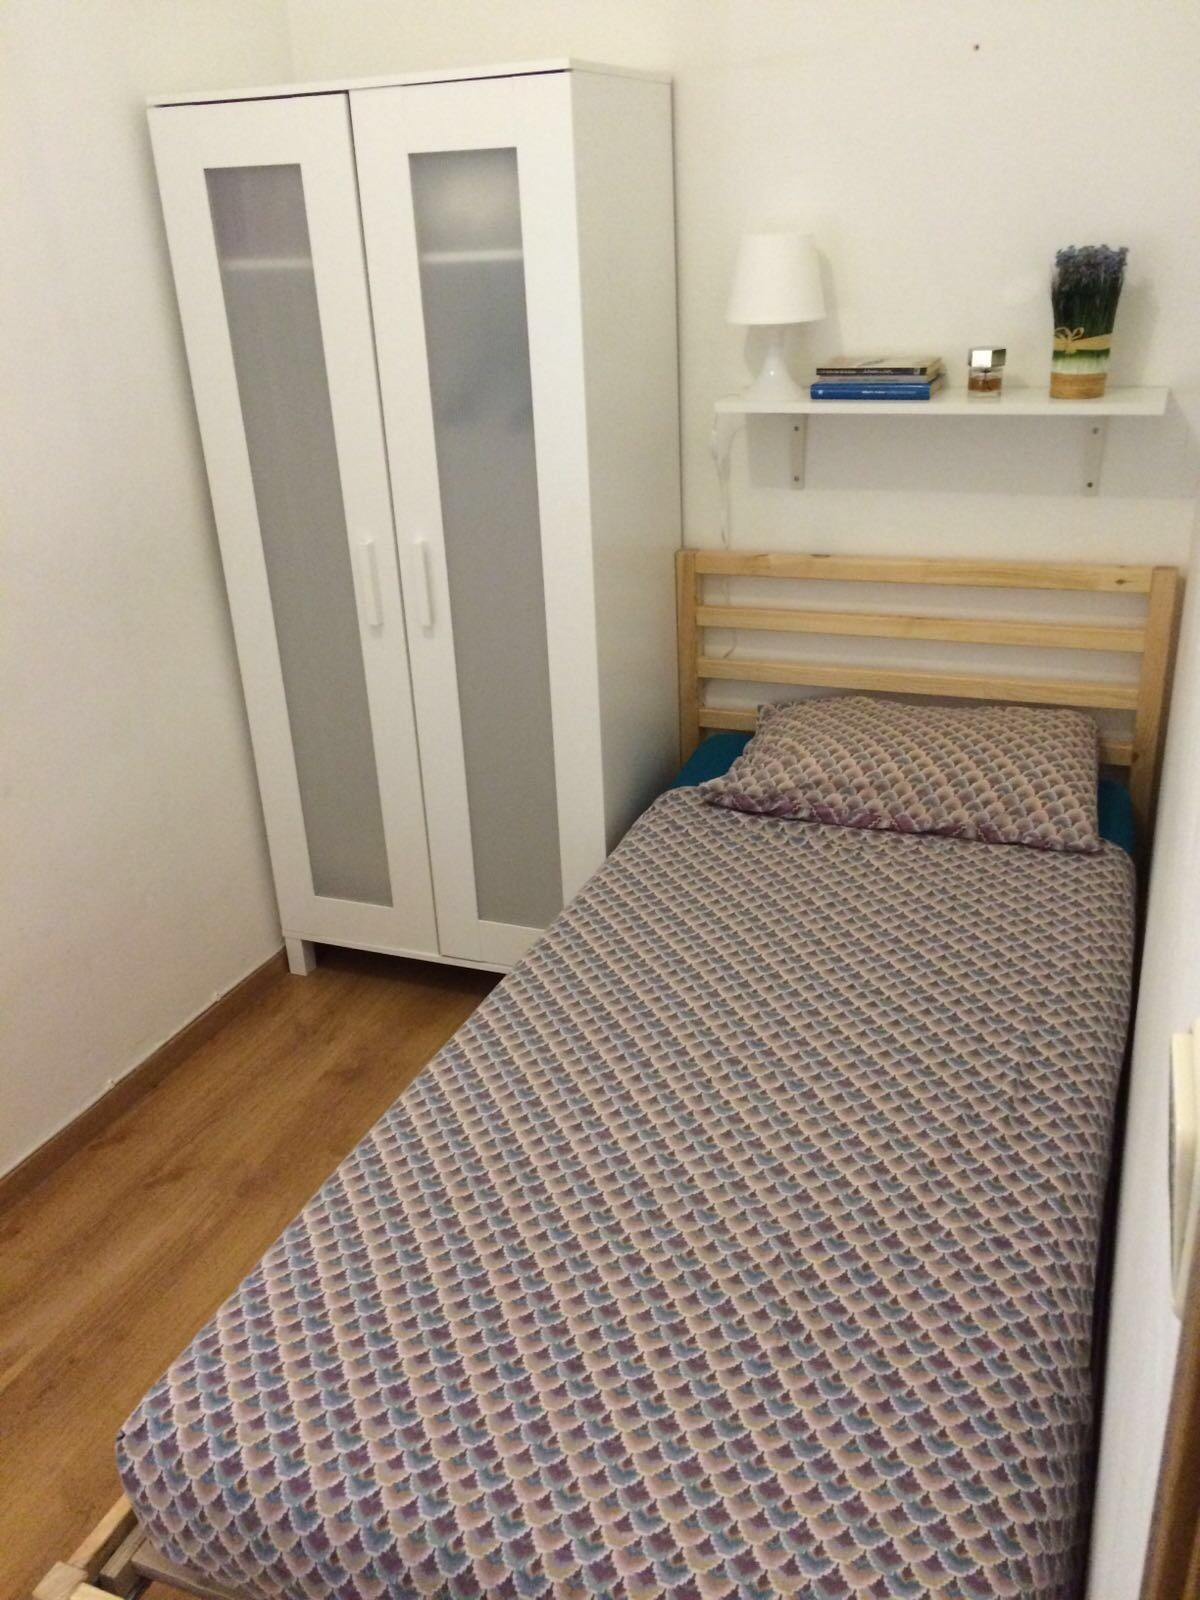 single-room-barcelona-city-excellent-conditions-cf442cbbda8a8369f1f3aa17c819eaa5